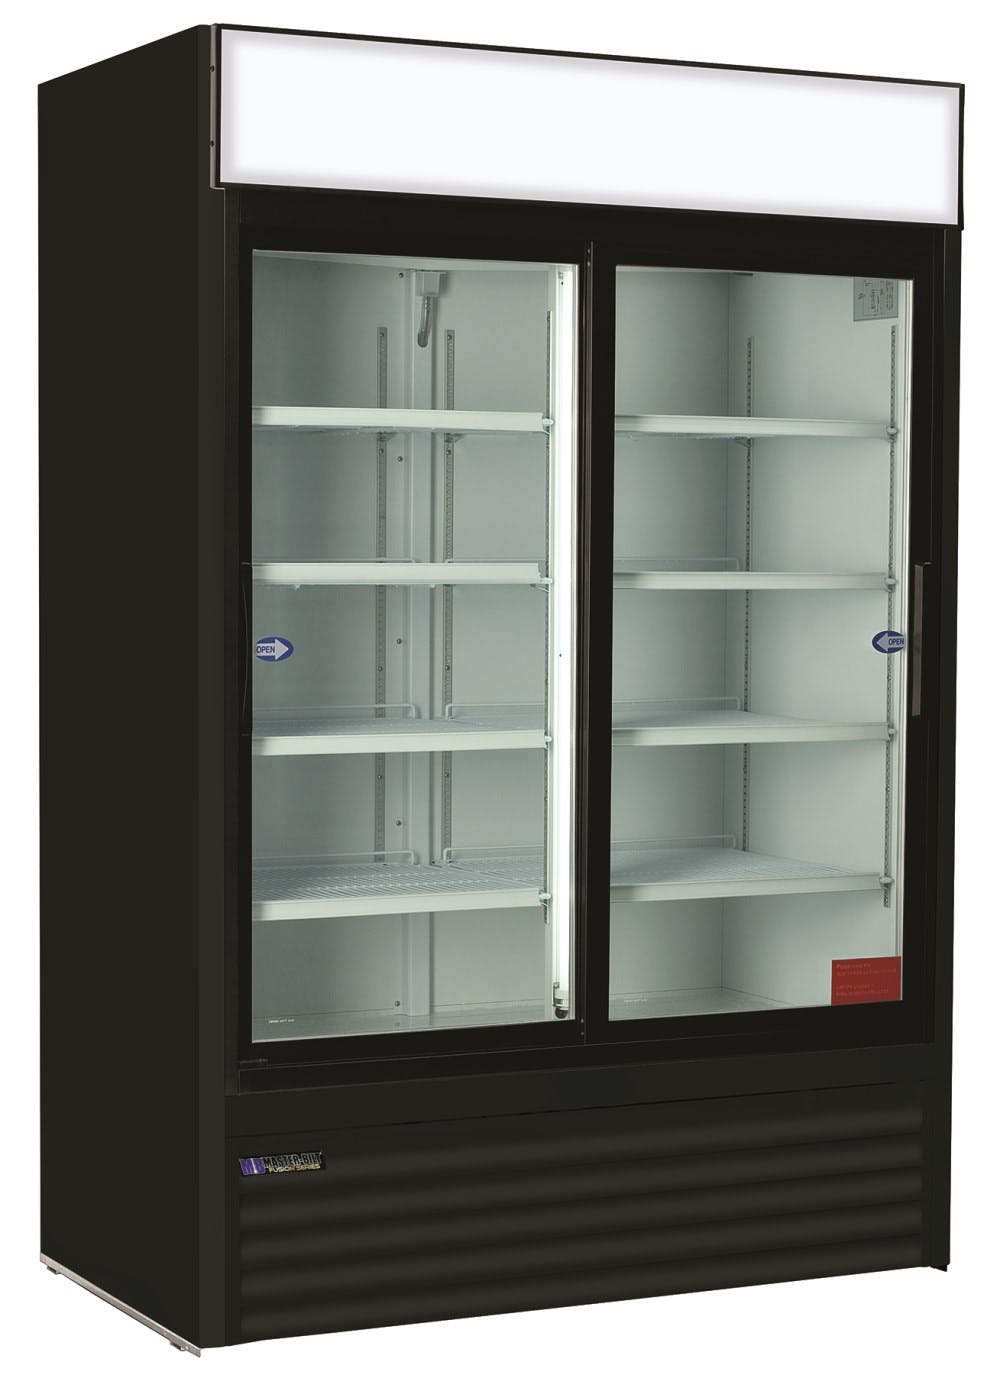 Master-Bilt MBGR48S Glass Door Merchandiser Refrigerator (48 cu ft capacity) Merchandiser sold by pizzaovens.com